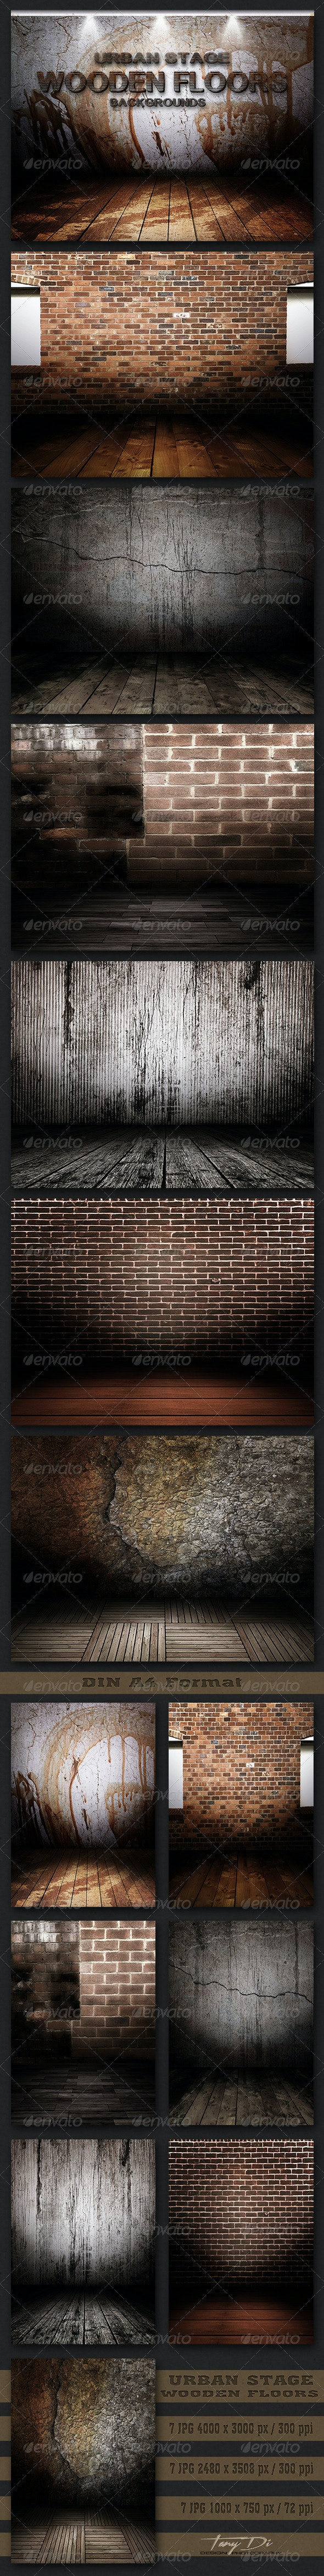 Urban Stage Wooden Floors - 3D Backgrounds